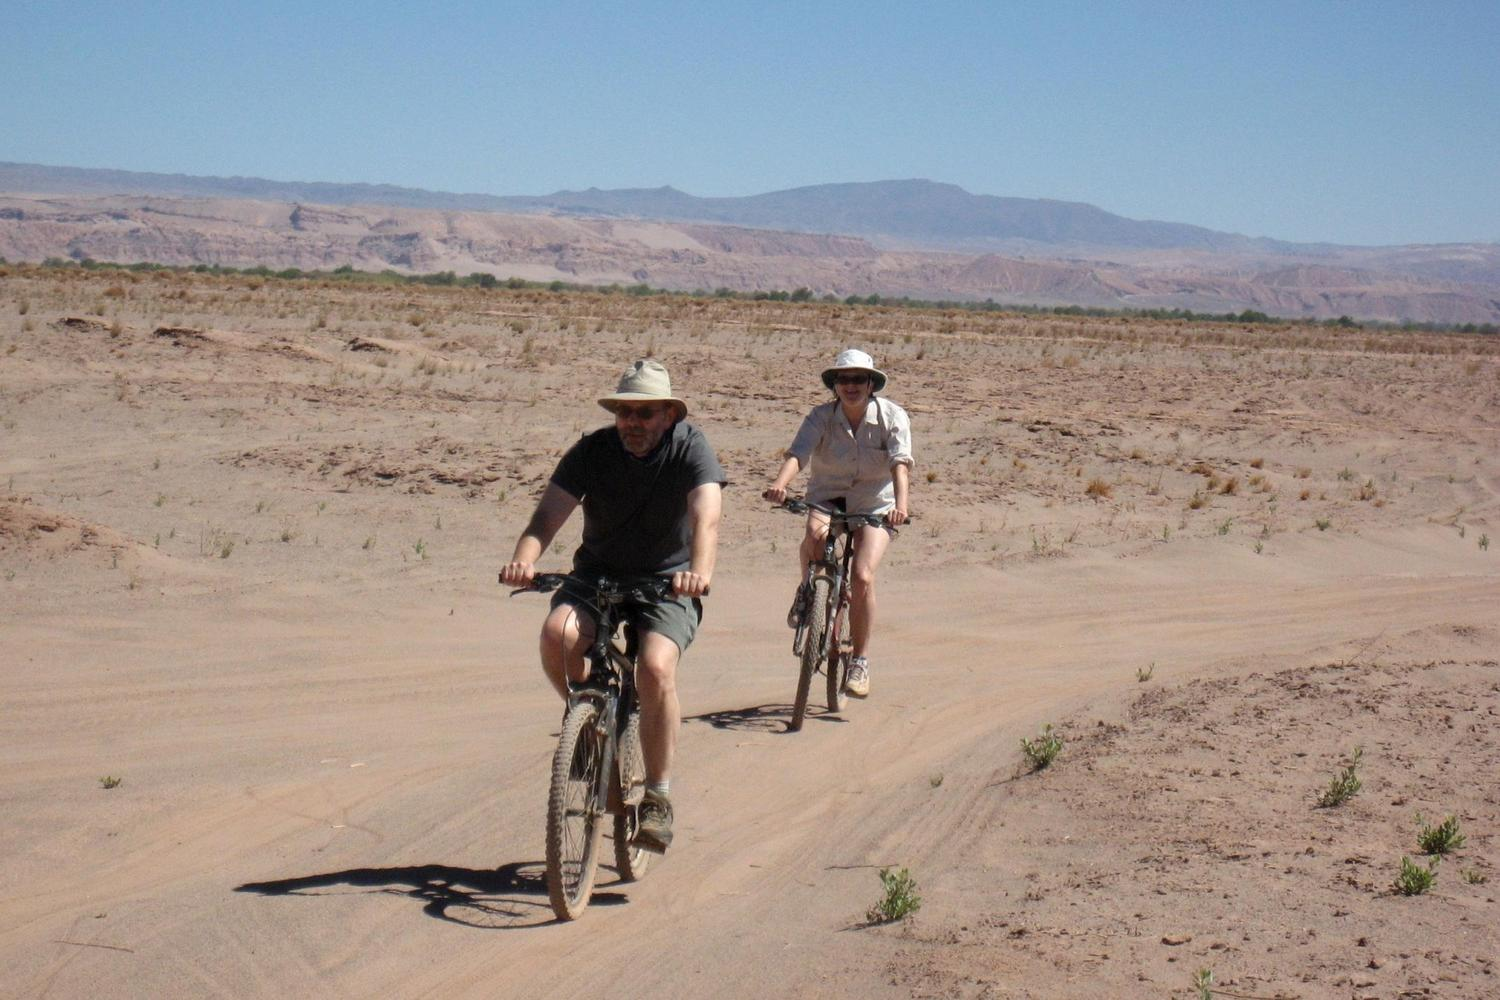 Gentle bike ride across the landscapes of the Atacama